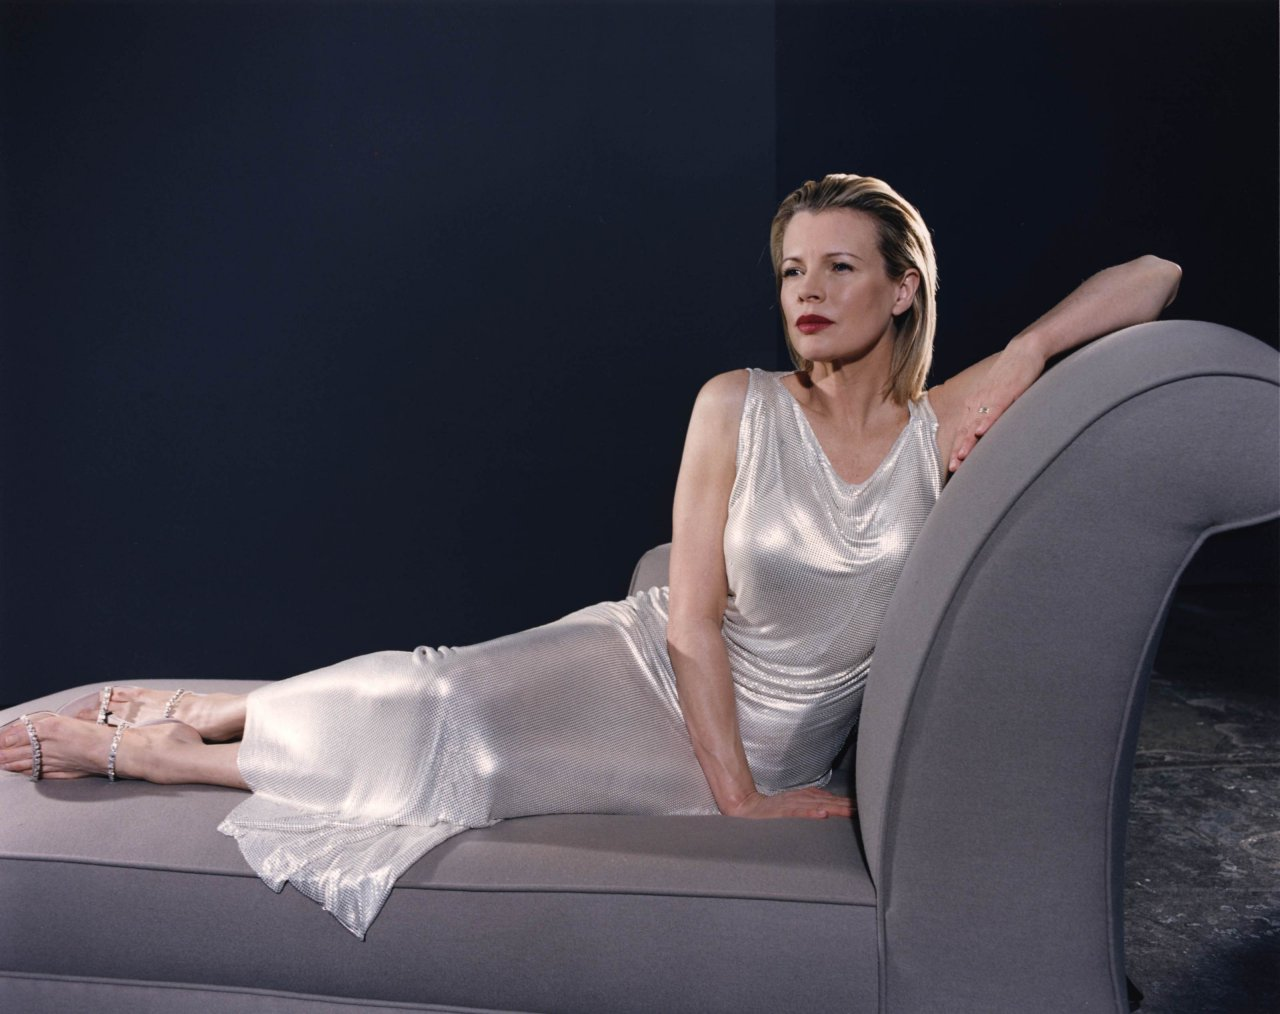 Kim Basinger leaked wallpapers